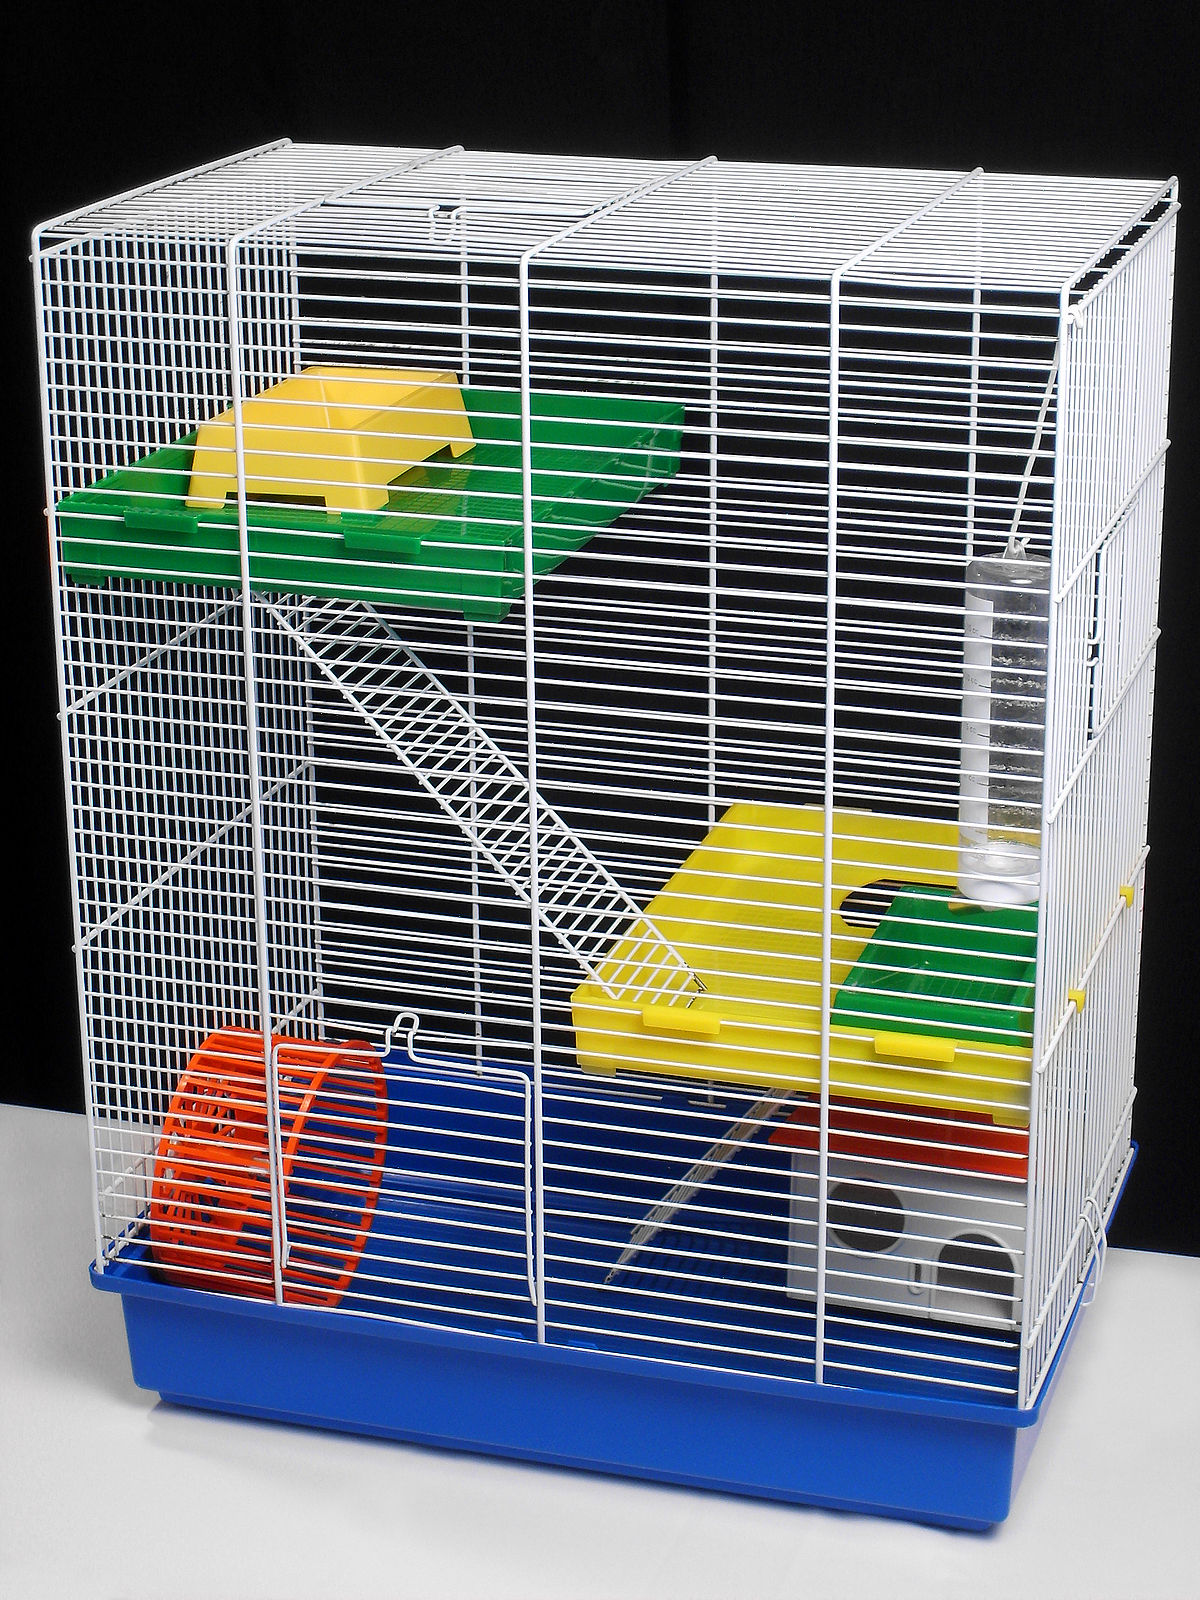 Hamster cage wikipedia for How to build a hamster cage